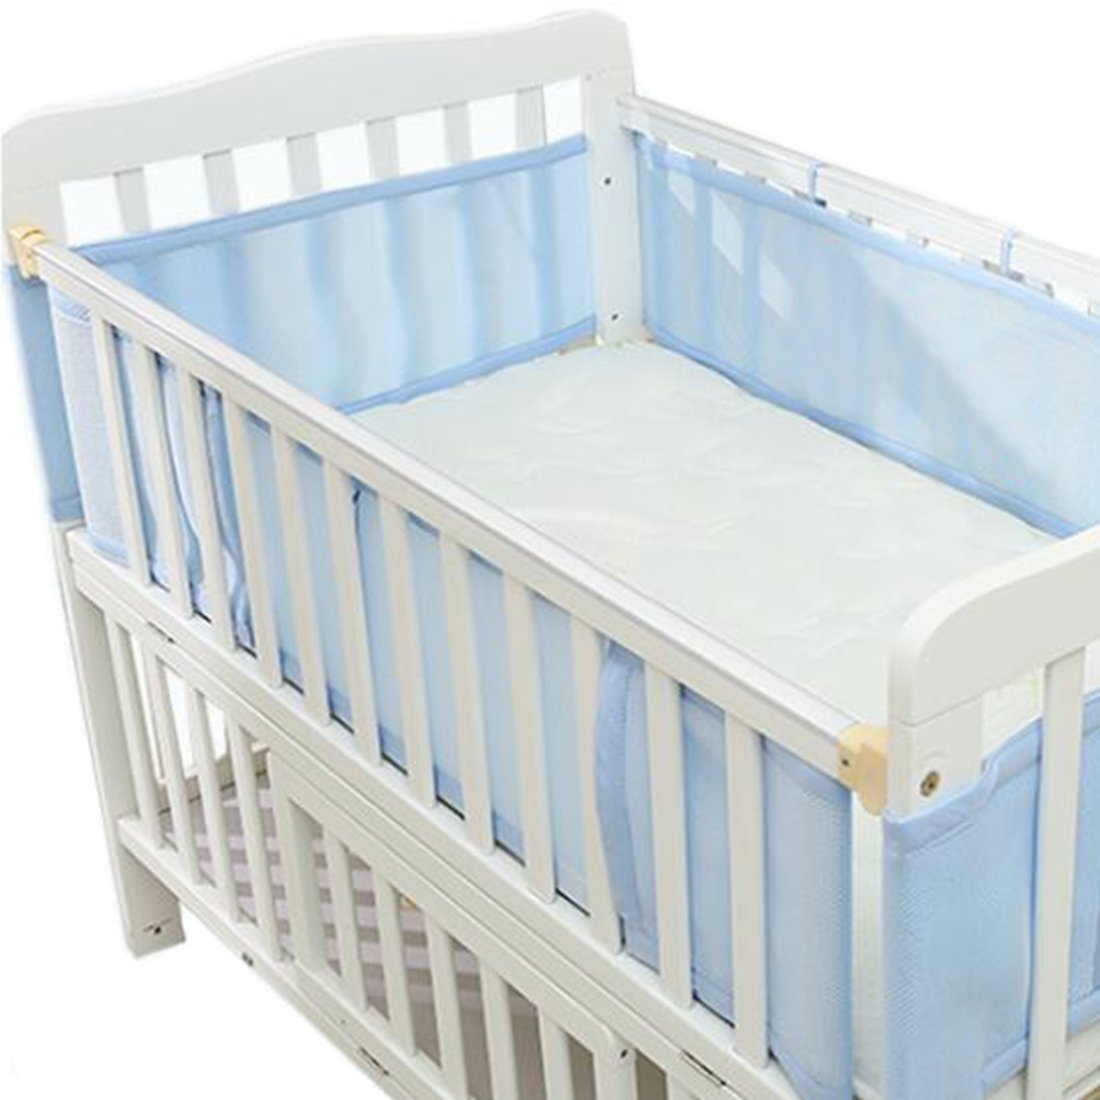 Tosnail Breathable Mesh Crib Liner - Fits 4 Sided Slatted & Solid Back Cribs (Blue)